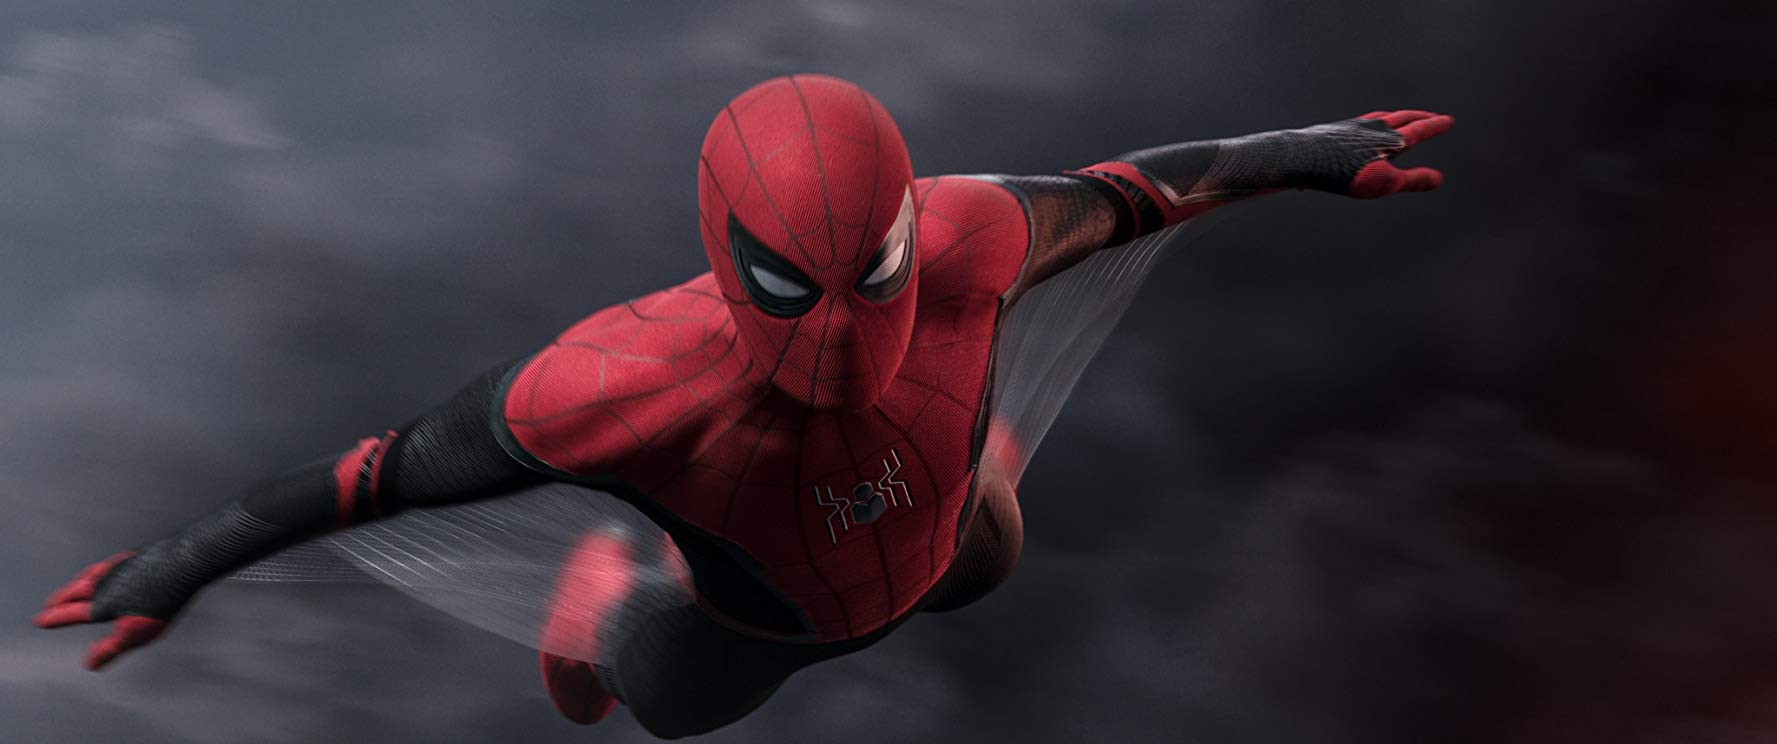 Spider-Man is heading to Disney streaming